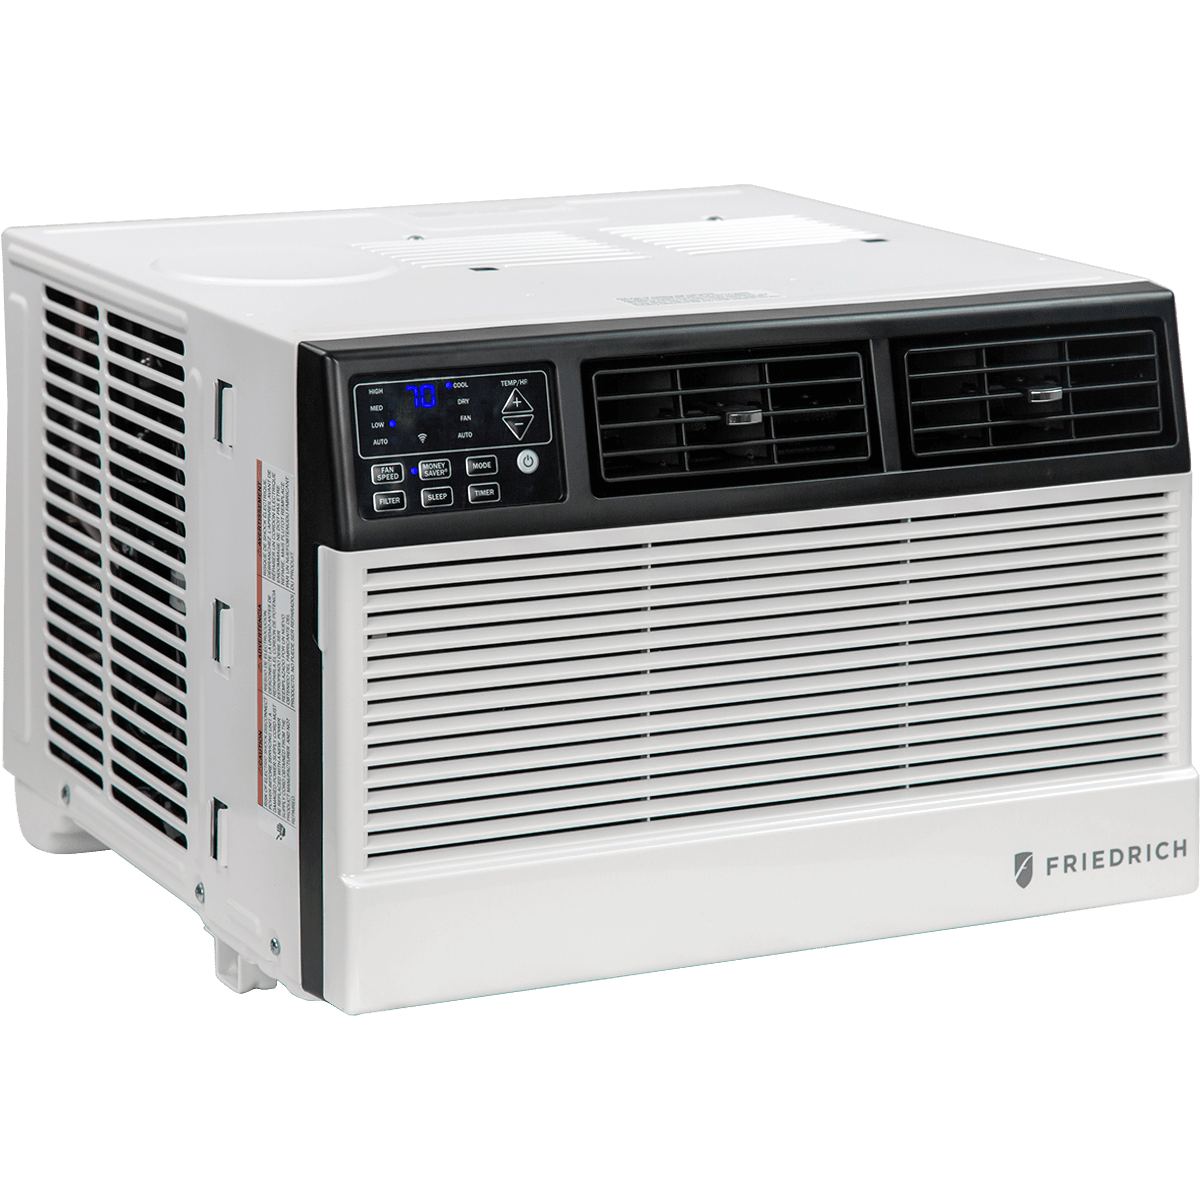 Friedrich Air Conditioning Co White CP08G10B Air Conditioner 8000 Btu